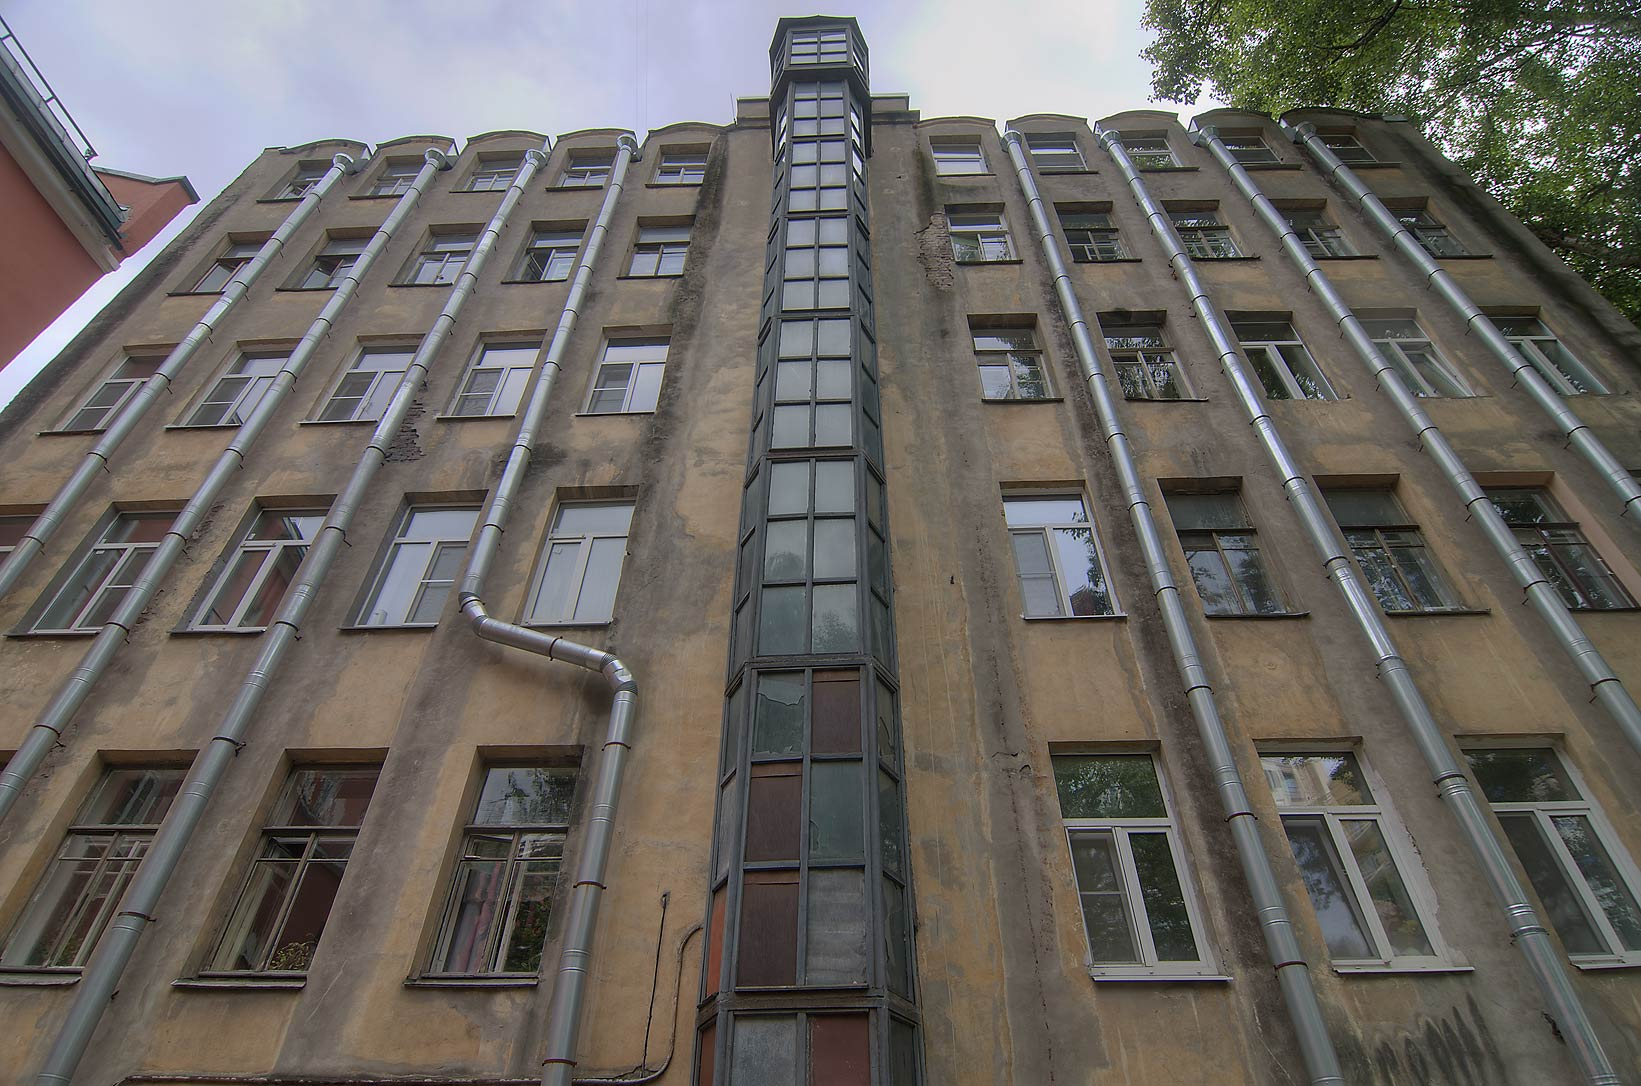 Organ pipe like facade in Petrogradskaya Storona neighborhood. St.Petersburg, Russia